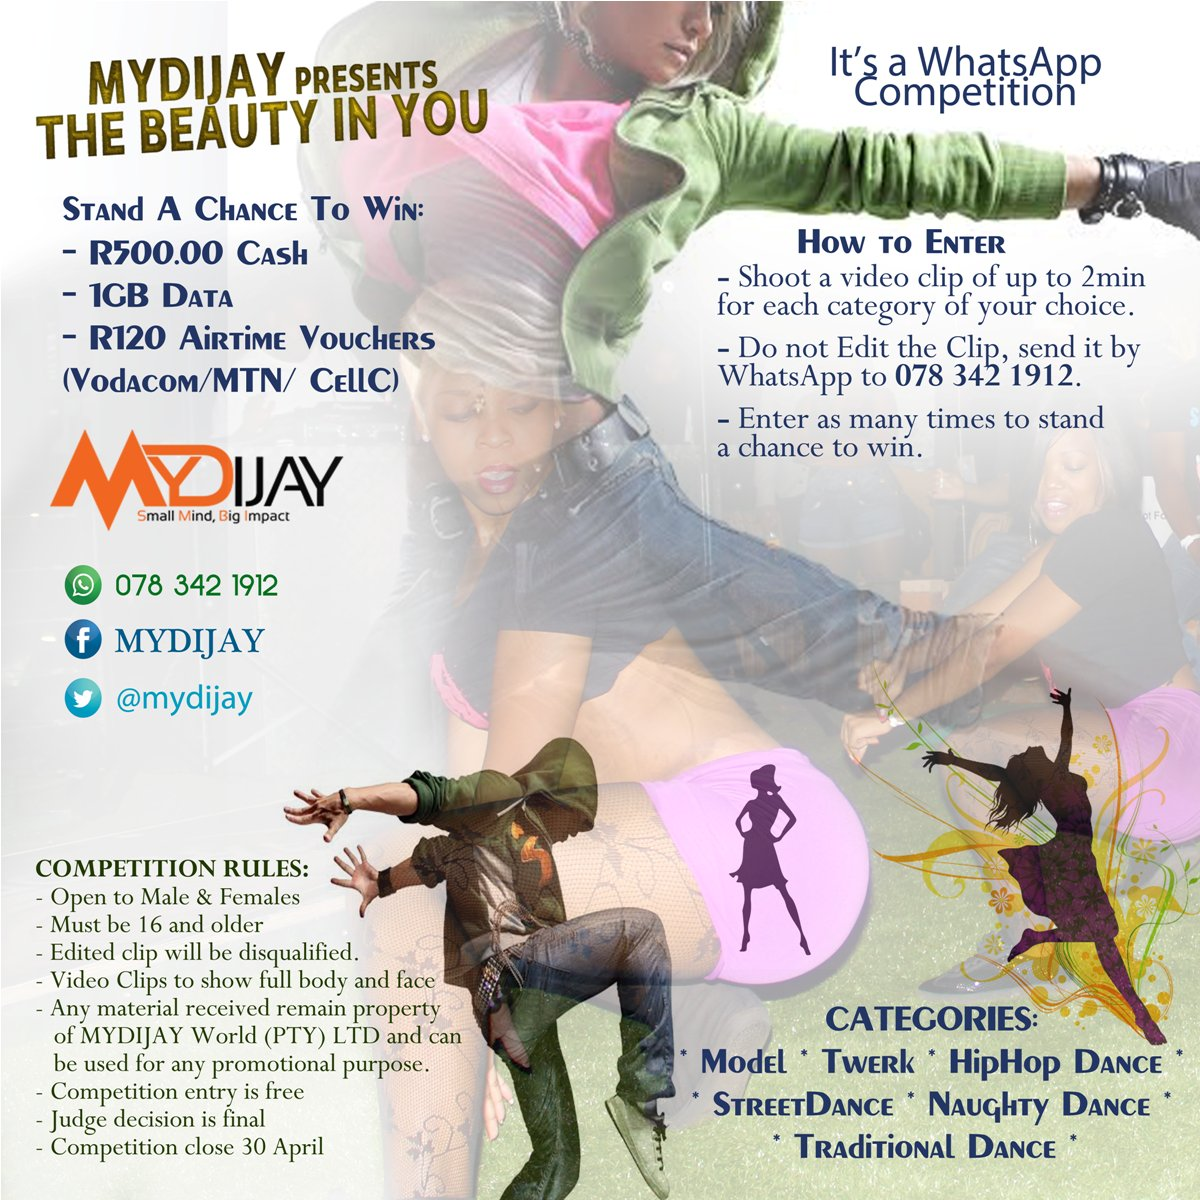 Thebeautyinyou Hashtag On Twitter Voucher Whatsapp Blast Stand A Chance To Win R500 Cash With Competition Open All Aged 16 And Older Entry Is Free Model Twerk Or Dance